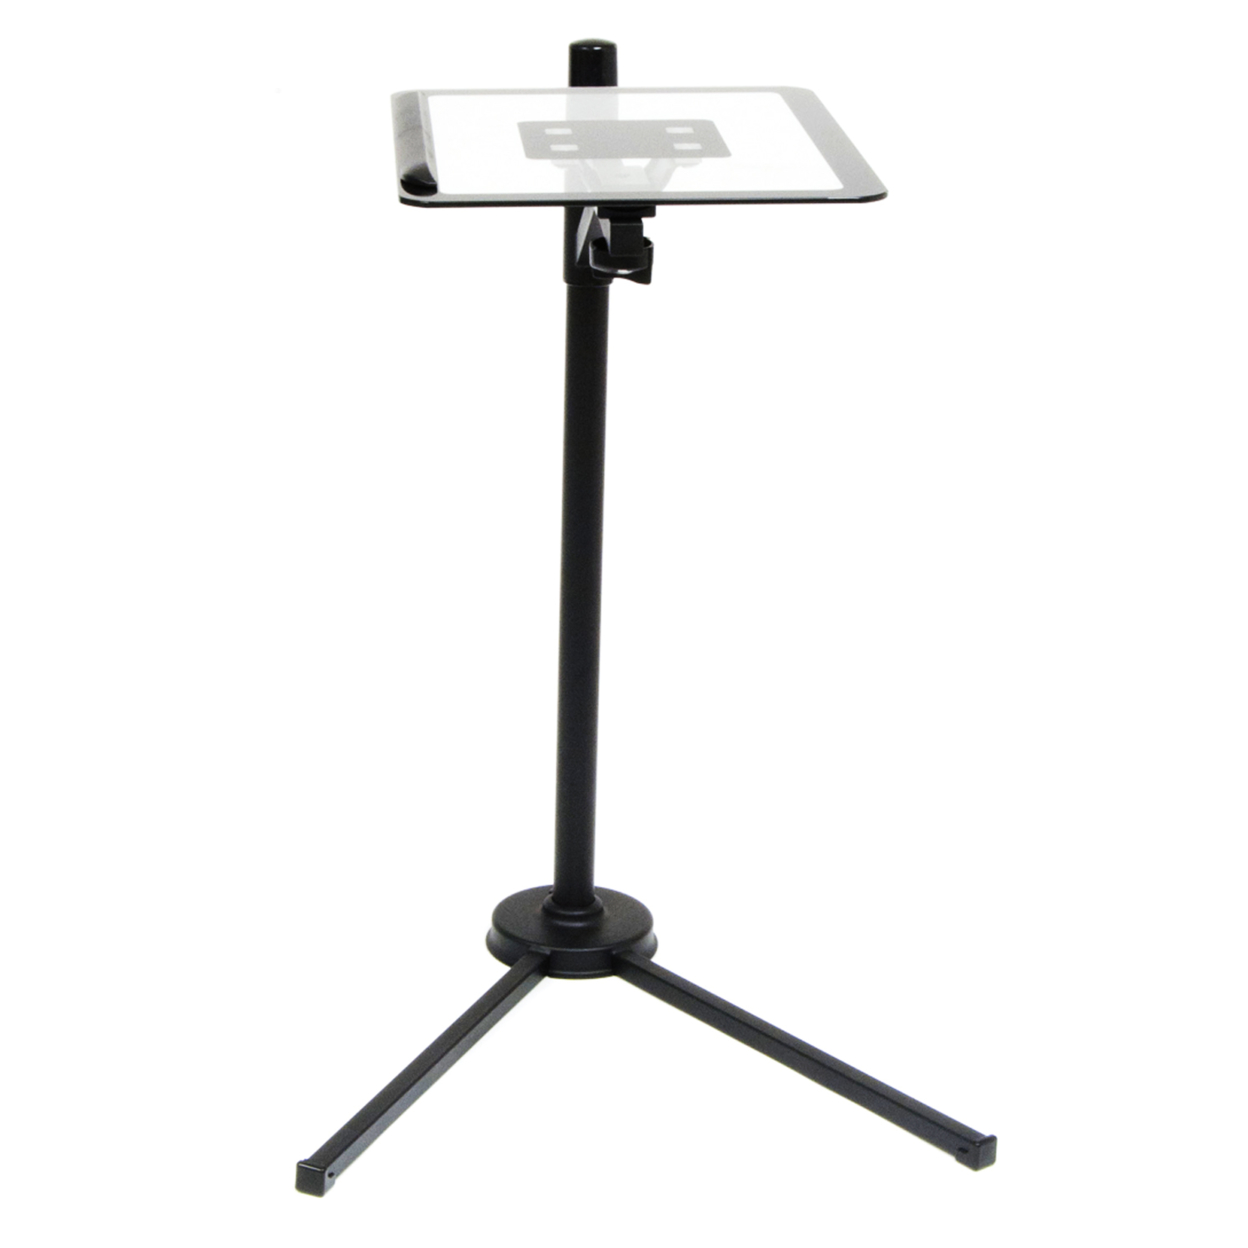 Offex Home Office Calico Tech Stand - Black/Clear Glass offex home office plinth ottoman dark taupe